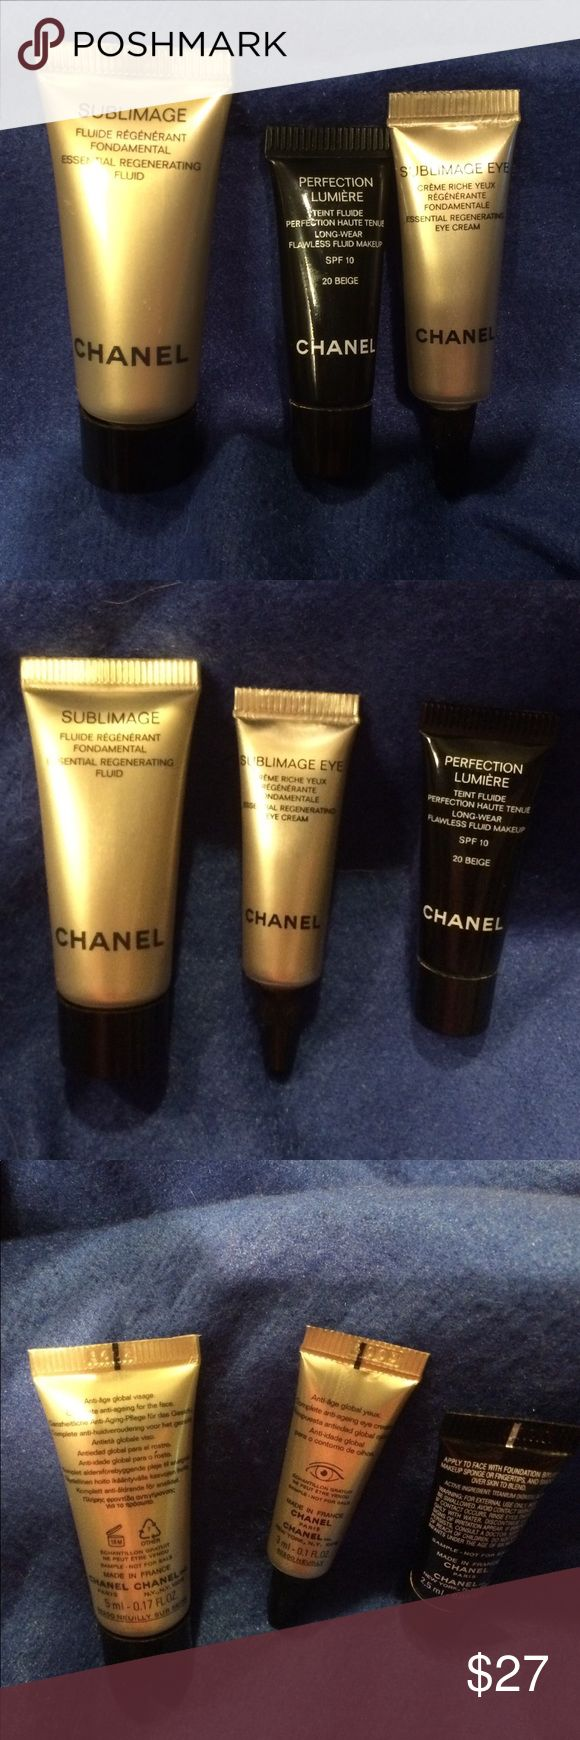 💙Chanel Travel Sized Cremes and Makeup💙 Brand New, Never Opened                 💜Chanel Sublimage                 Essential Regerating Fluid 5ml/0.17fl.oz              💜Chanel Sublimage Eye Cream,   Essential Regenerating Eye Creme, 3ml/0.1fl.oz.                                           💜Chanel Perfection Lumiere Longwear Flawless Fluid Makeup           SPF 10   #20 Beige   2.5ml/0.08fl.oz       💜💙💜💙💜💙💜💙💜💙💜💙💜 CHANEL Makeup #flawlessmakeup